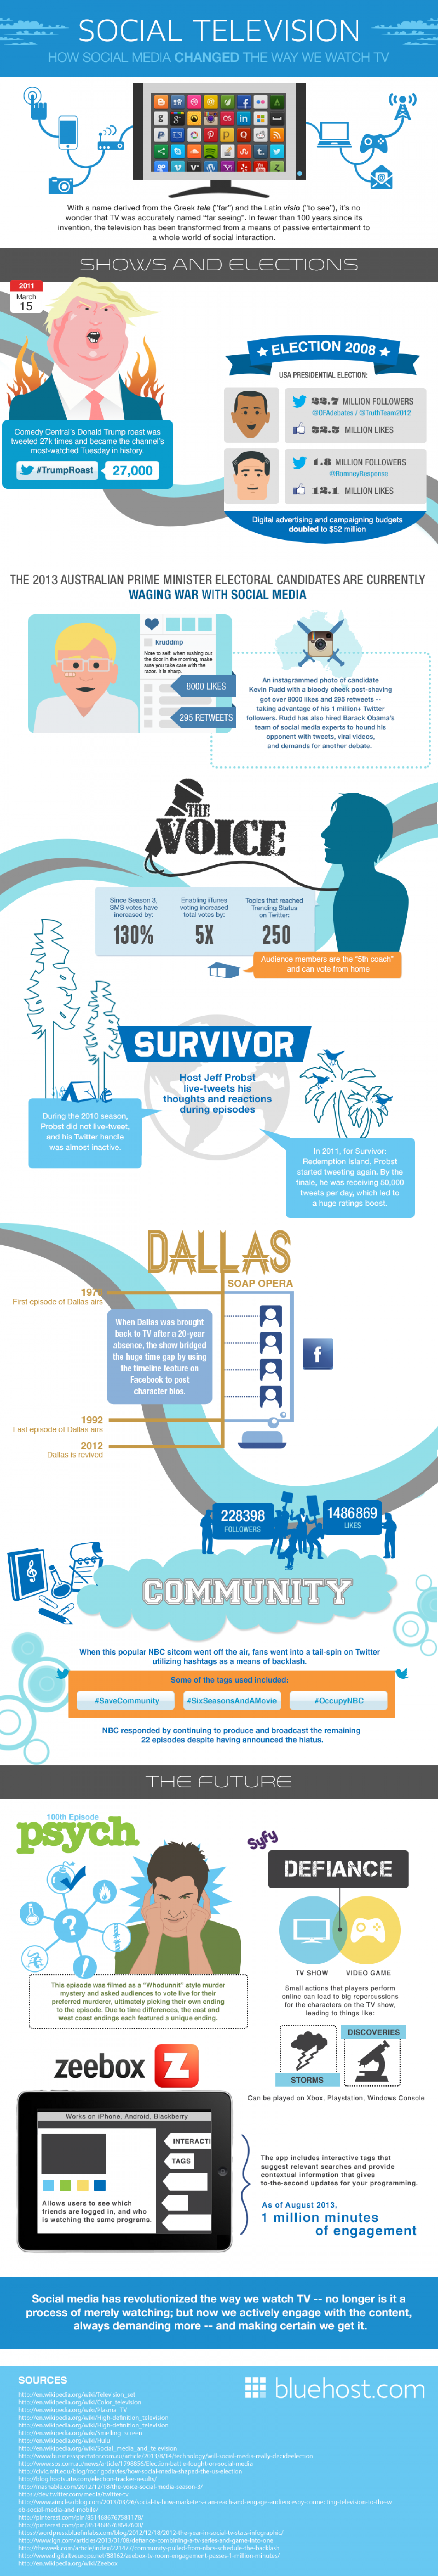 Social Television: How Social Media Changed The Way We Watch TV Infographic